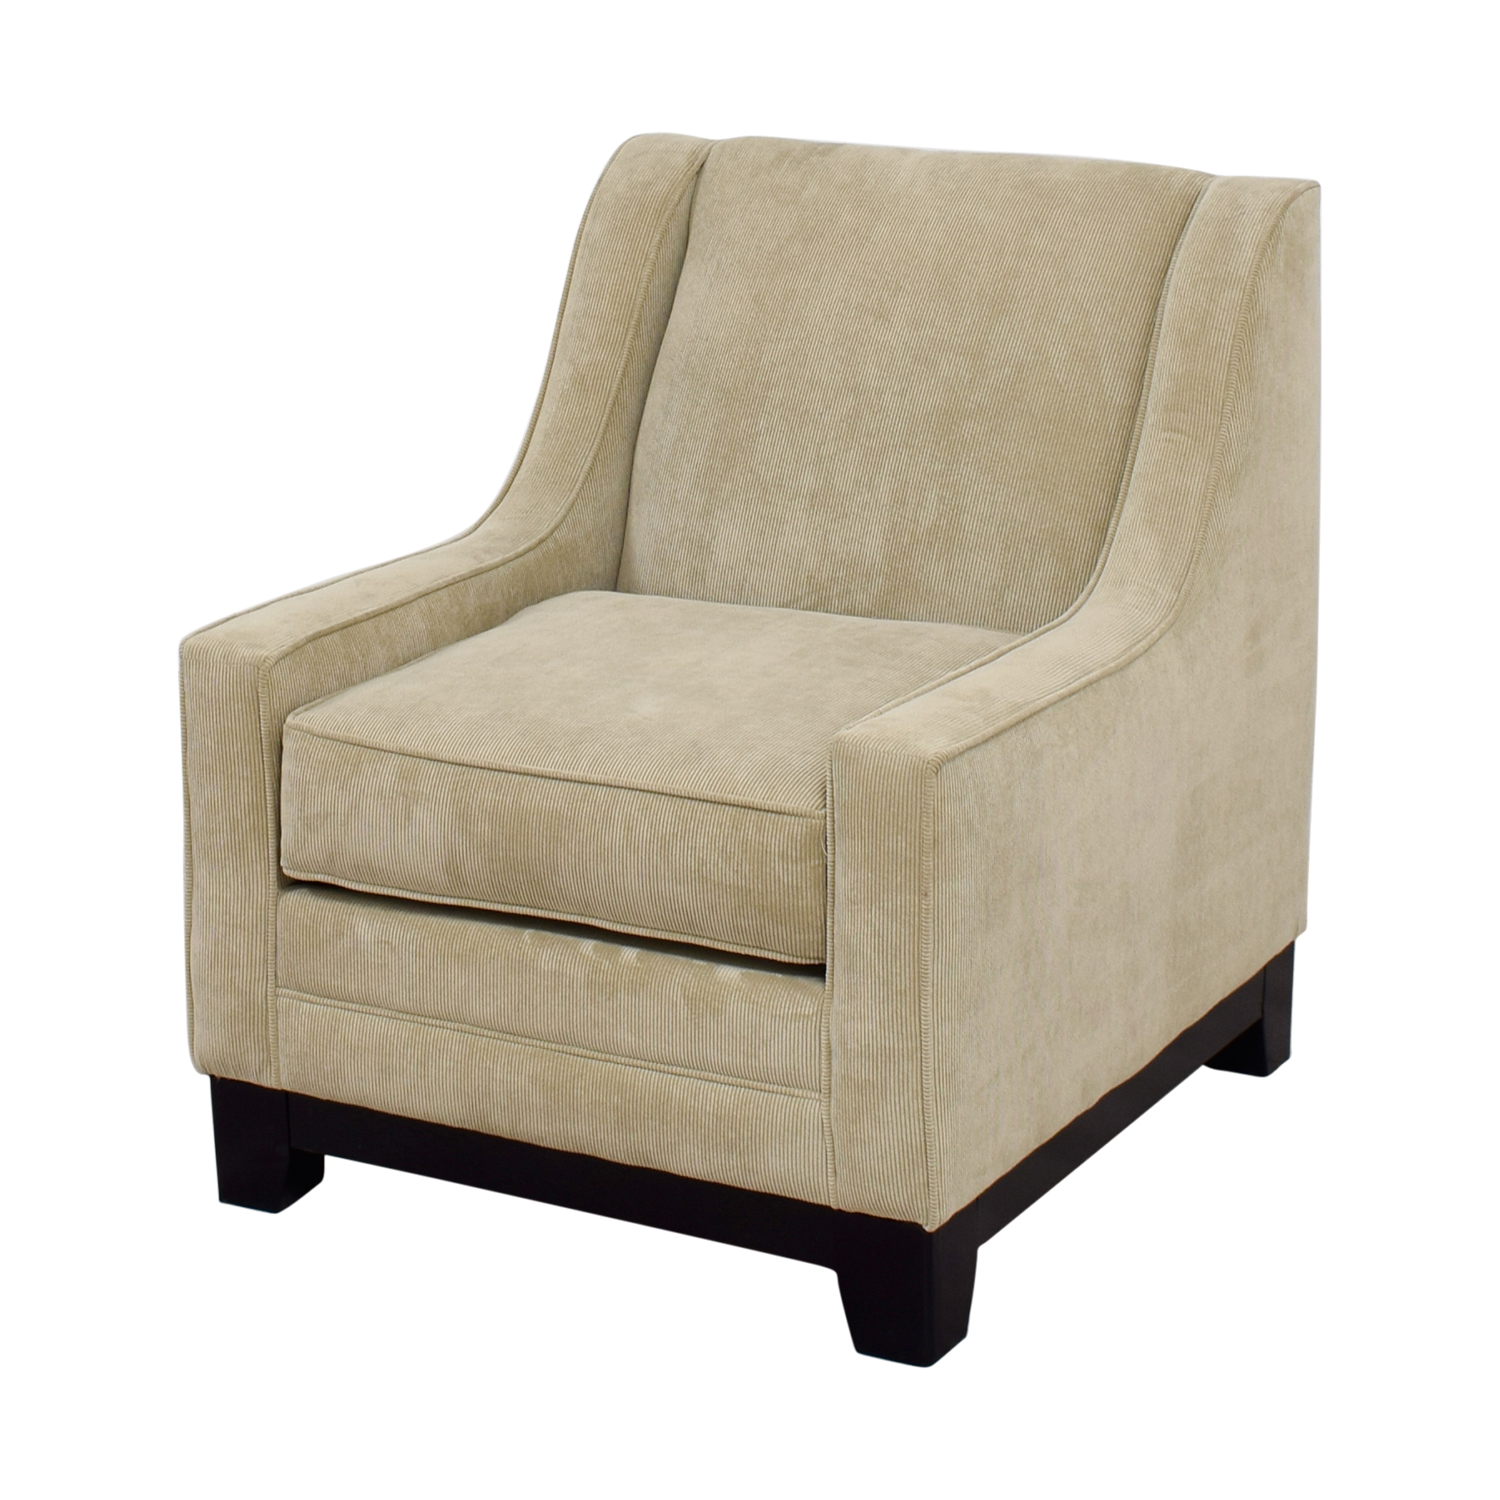 Amazing ... May Furniture May Furniture Tan Corduroy Accent Chair Second Hand ...